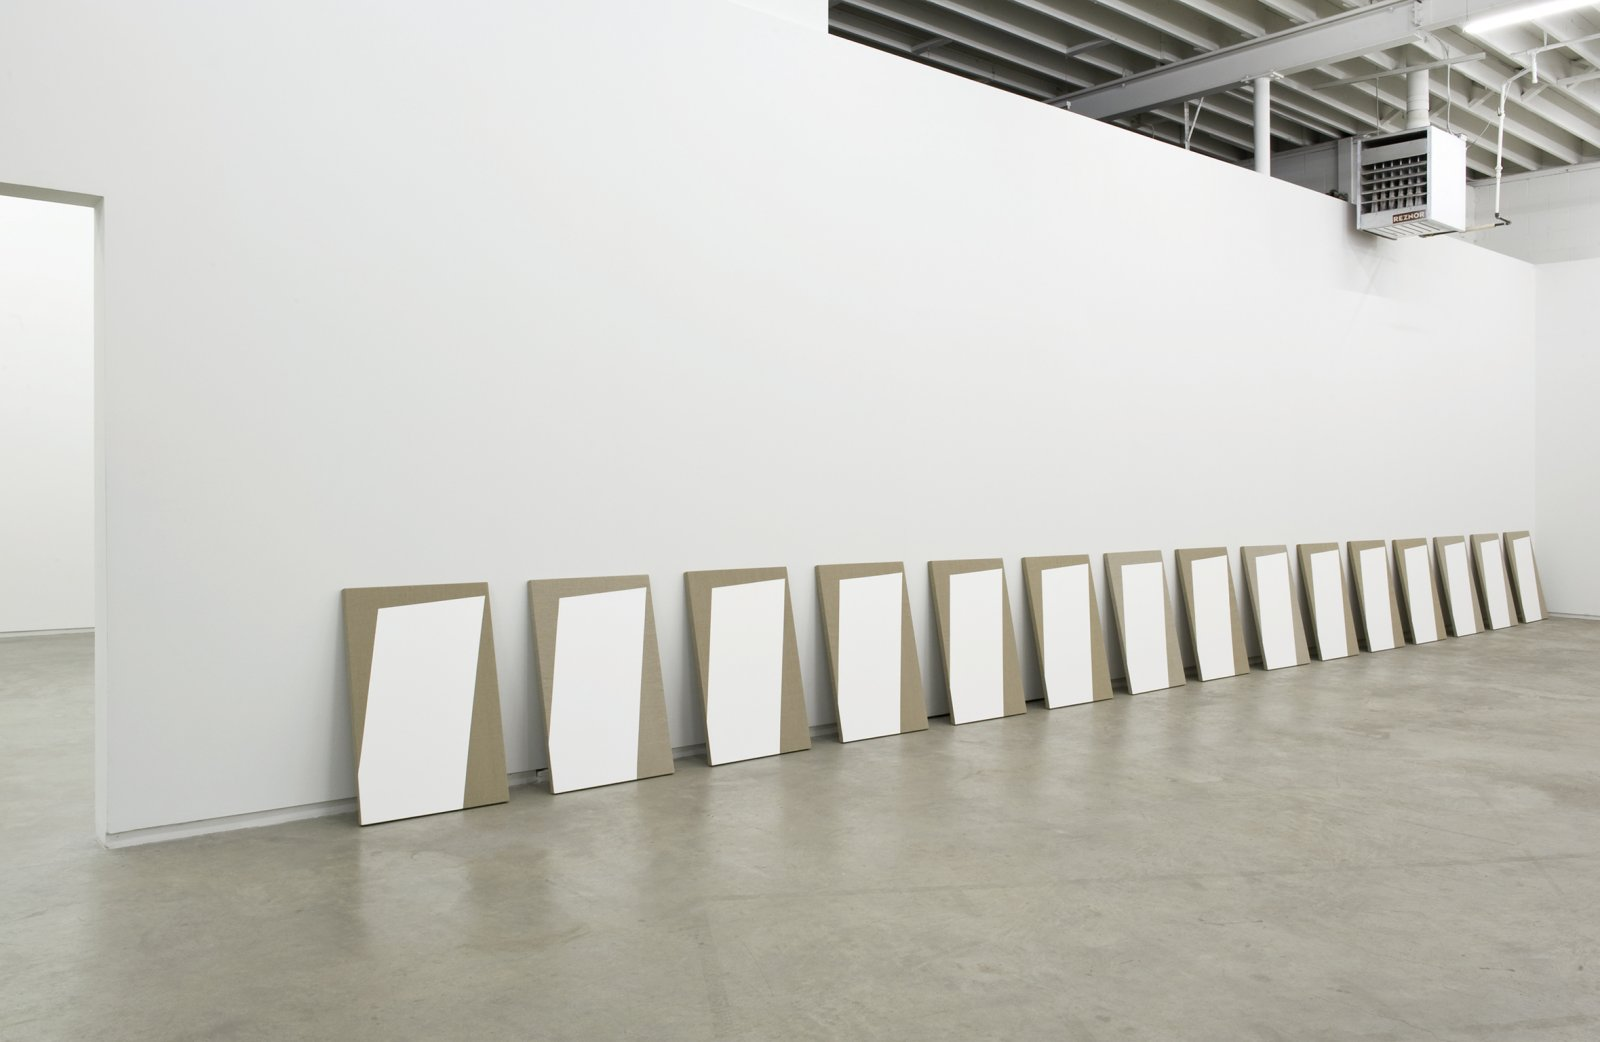 Arabella Campbell, A catalog of its own content, 2011, 15 acrylic on linen panels, 1 framed photocopy of Light in Architecture and Art, p. 174–175, 36 x 472 x 9 in. (91 x 1199 x 24 cm) by